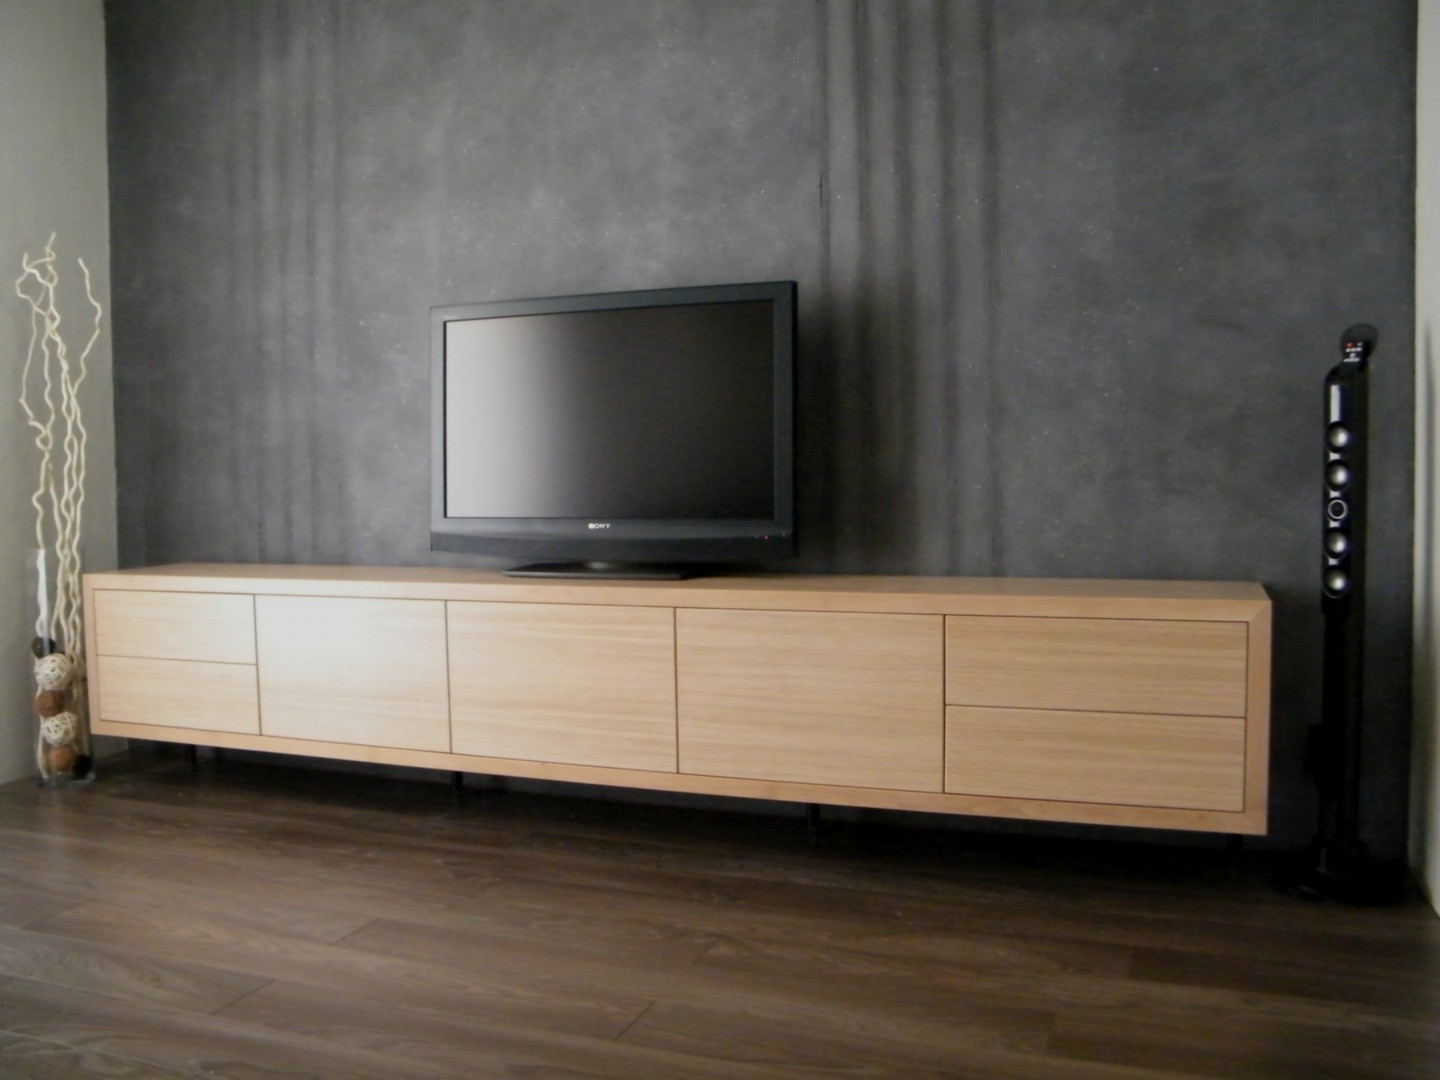 Meuble tv bas et long bois id es de d coration int rieure french decor - Meuble de salon contemporain ...